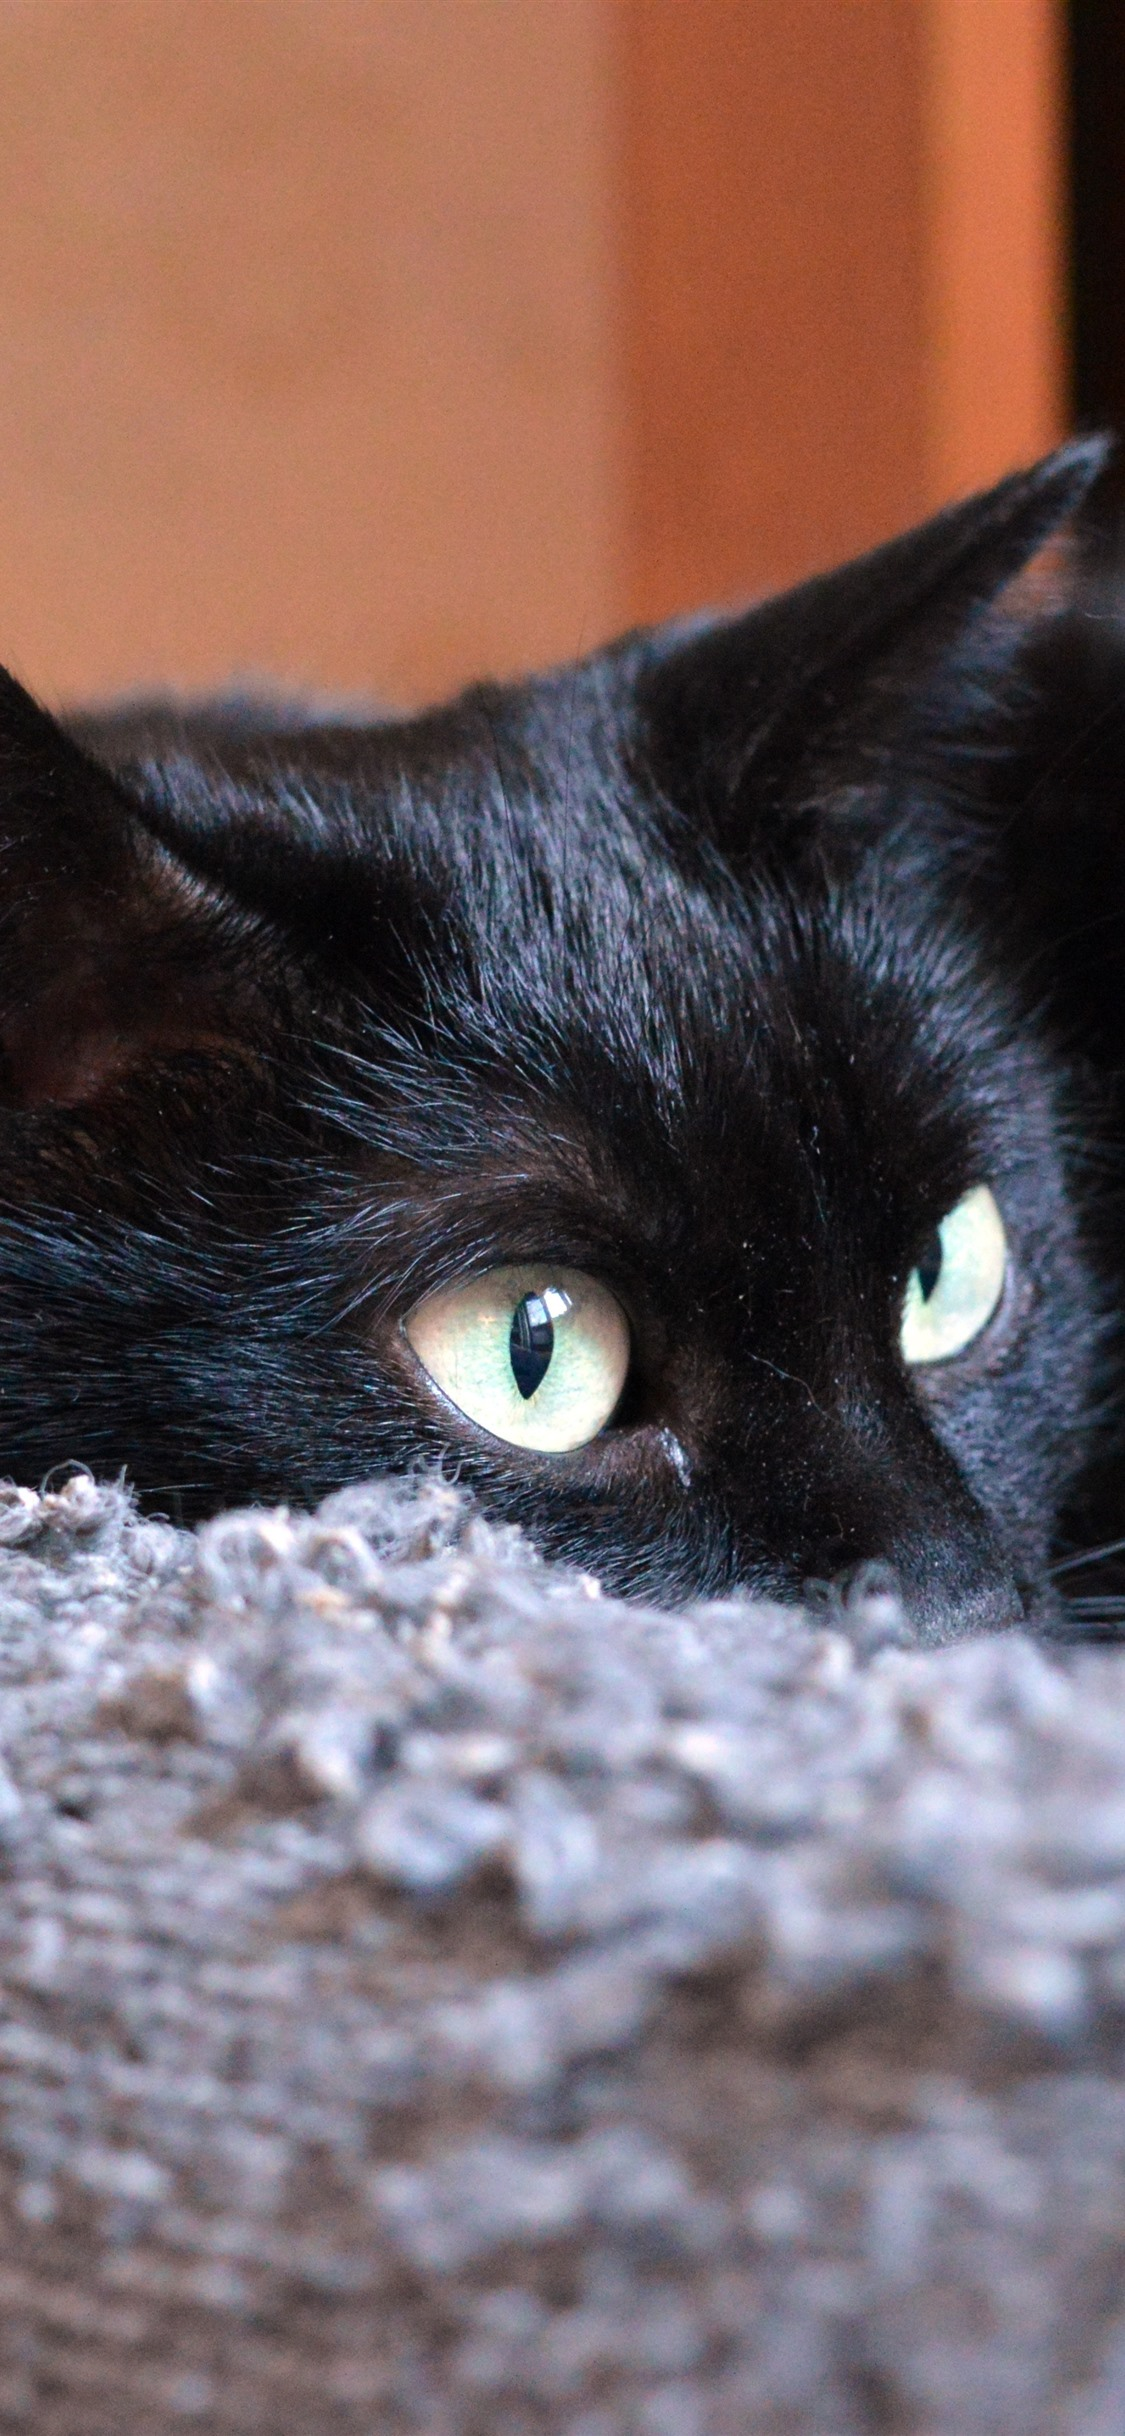 Black Cat Eyes Sofa 1242x2688 Iphone 11 Pro Xs Max Wallpaper Background Picture Image